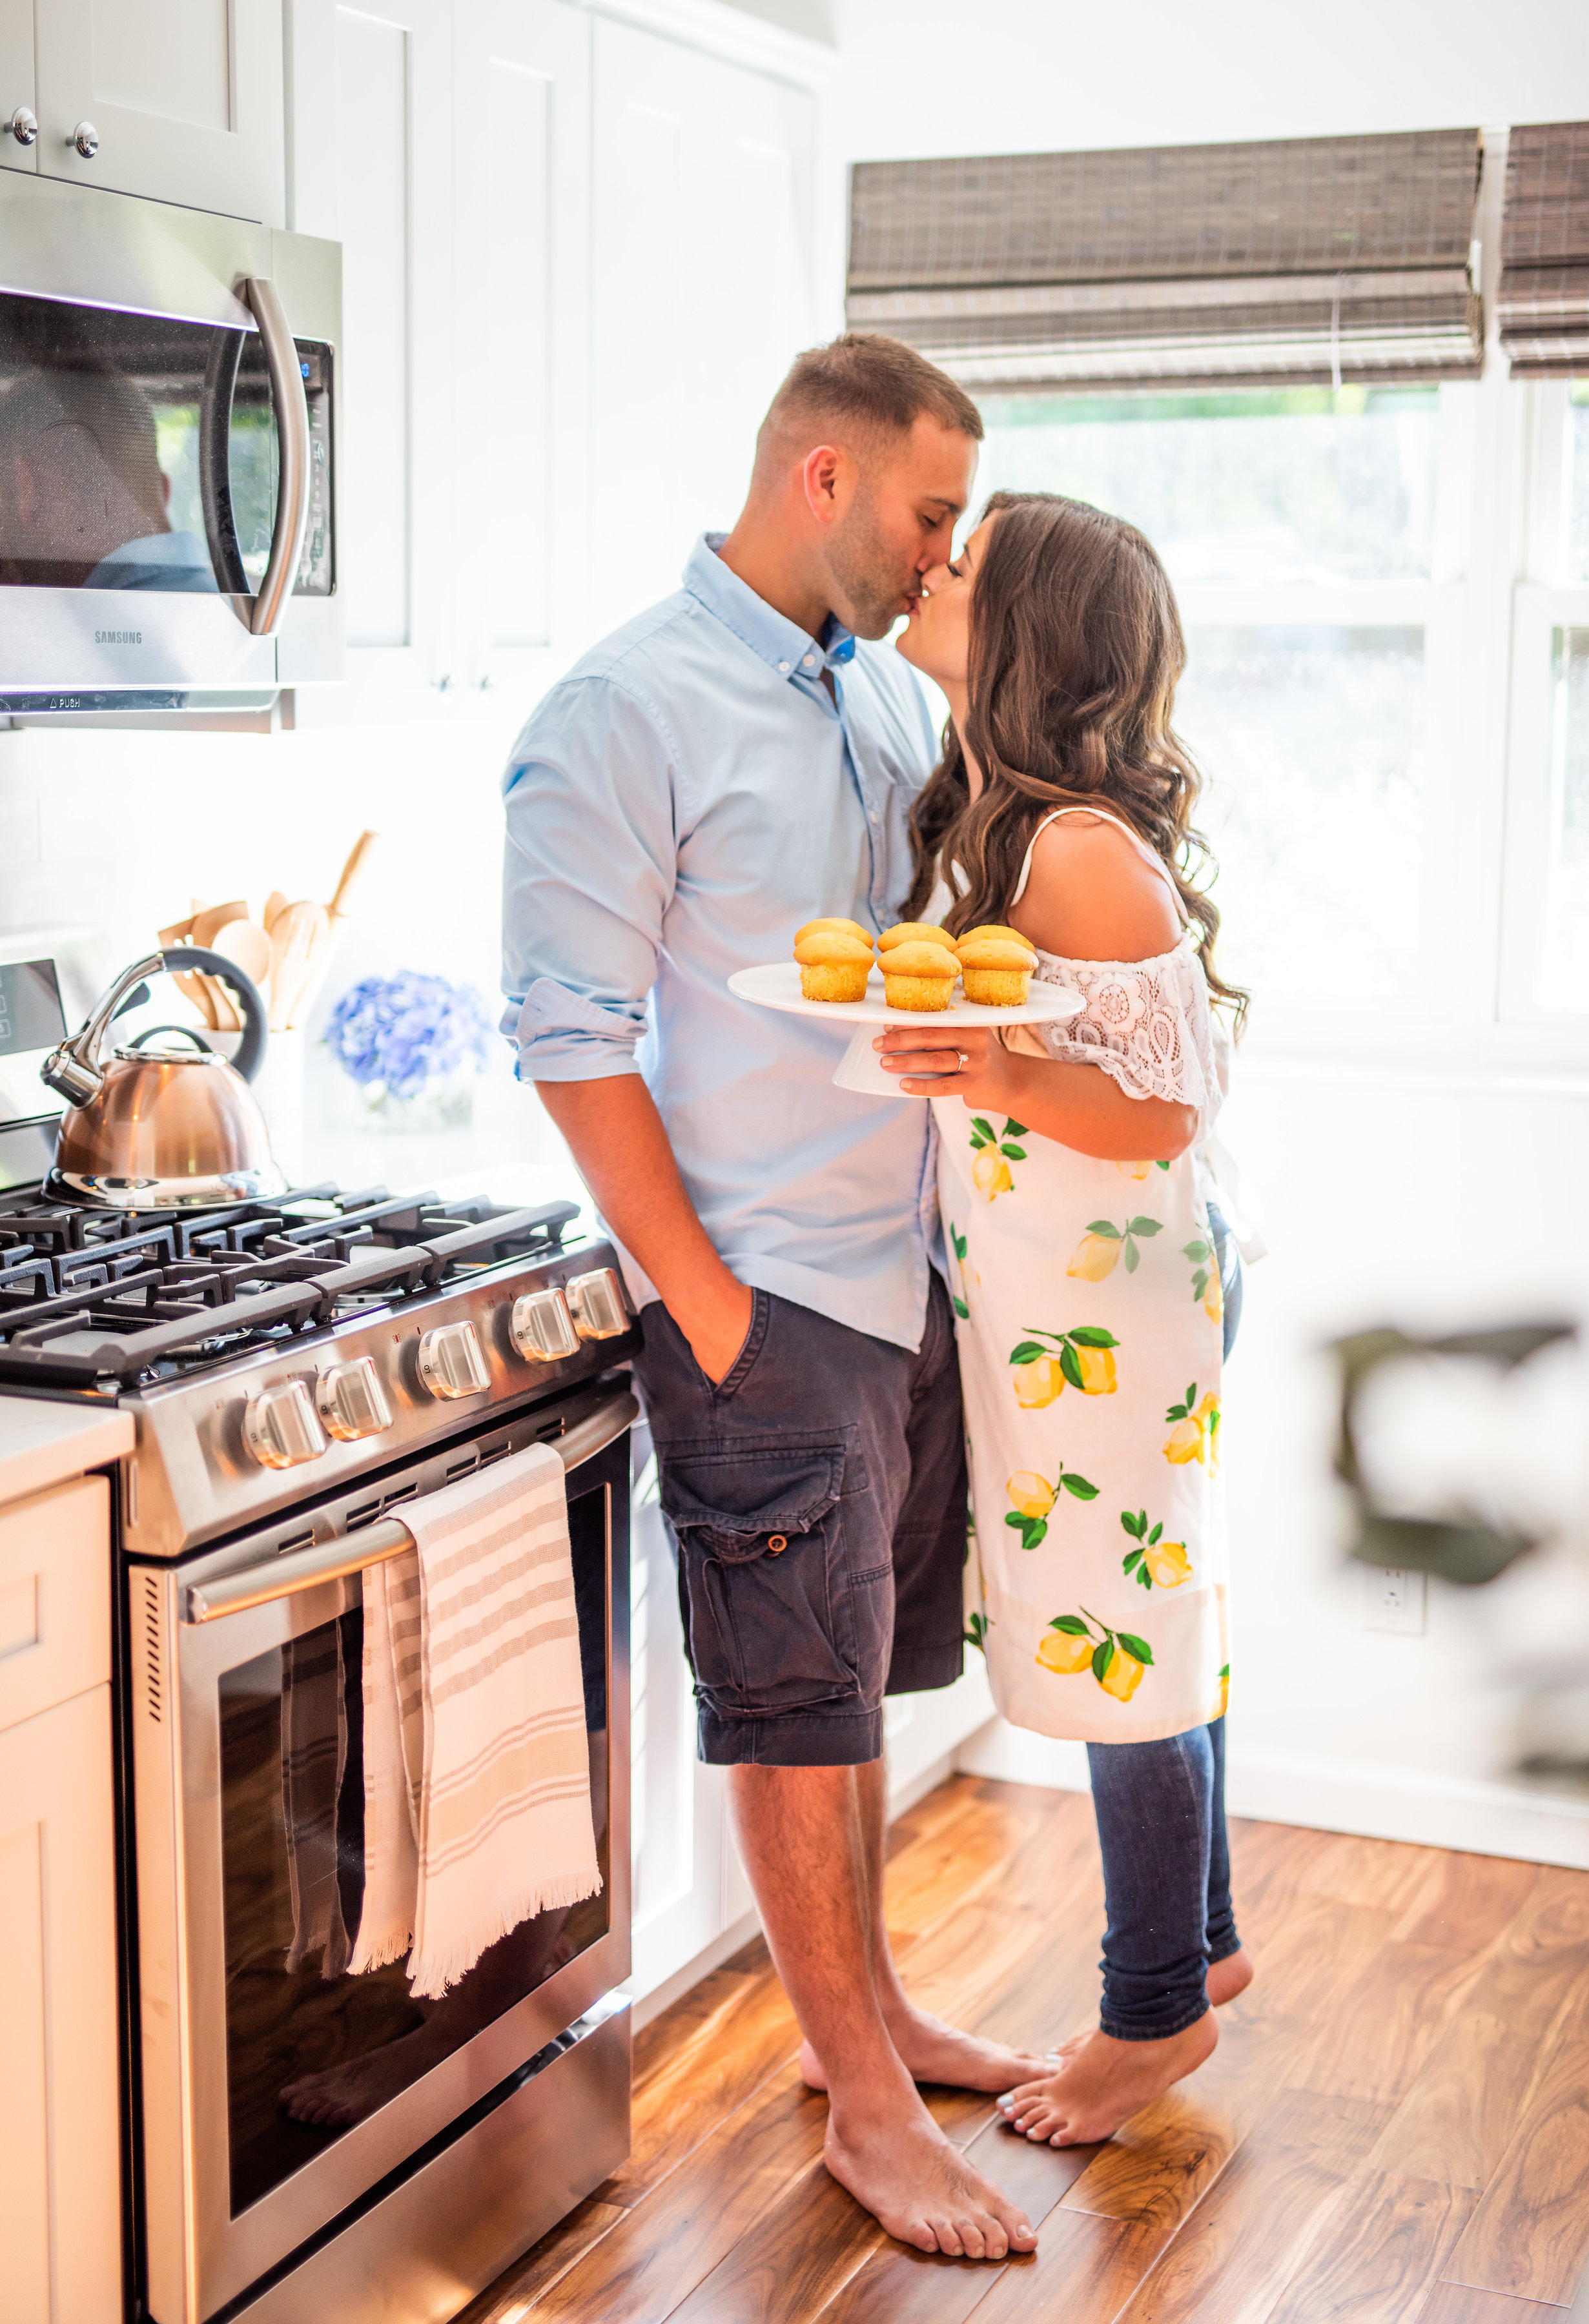 Calverton Engagement Shoot | Engagement Shoot at Home | Rustic Farrm Kitchen Engagement Shoot | North Forrk Wedding Photographer15